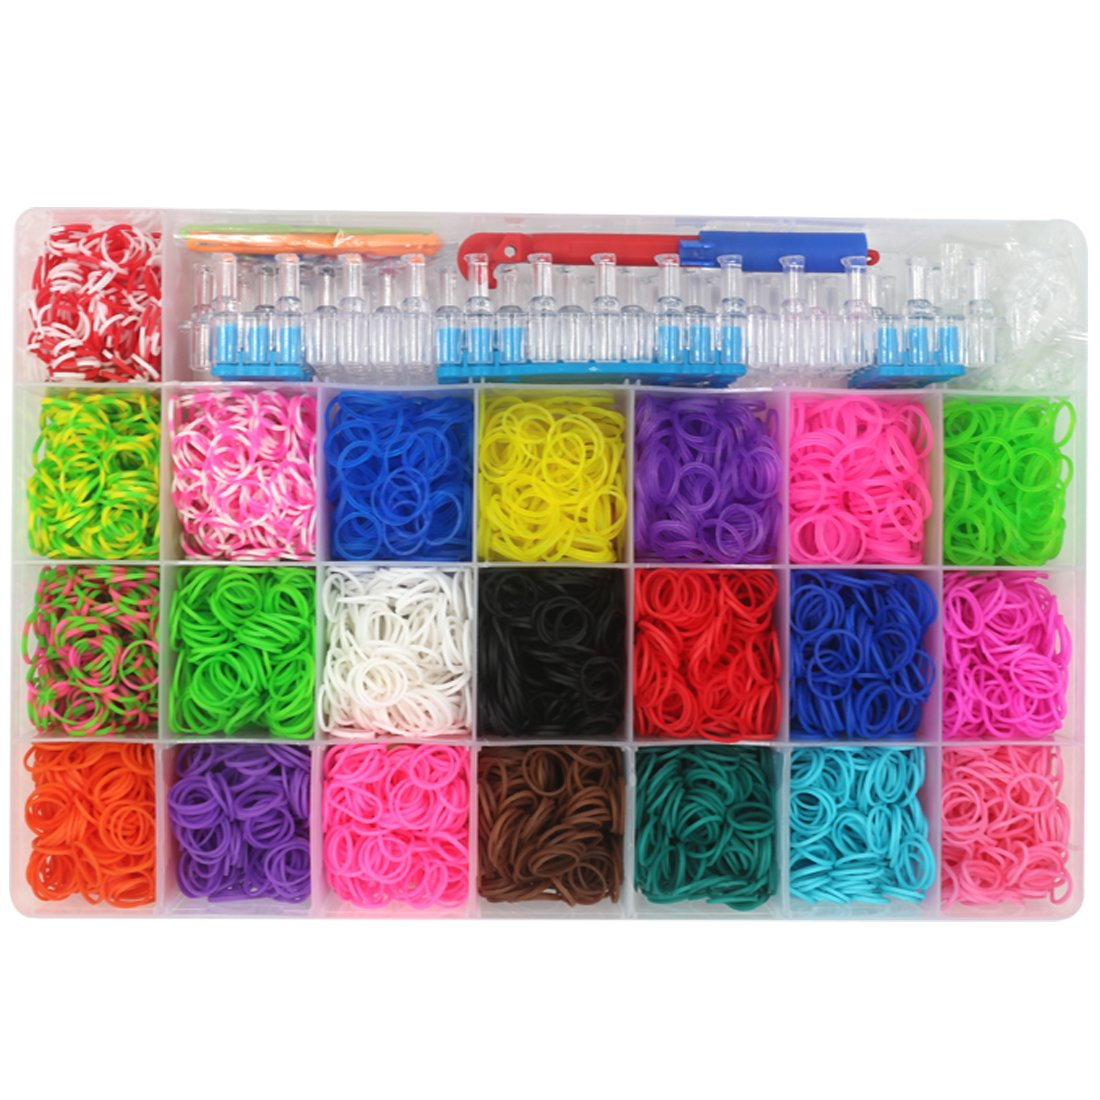 4400Pcs Colorful Rubber Band Refill Kit for Loom Rainbow Bracelets Dress Making Bluewo